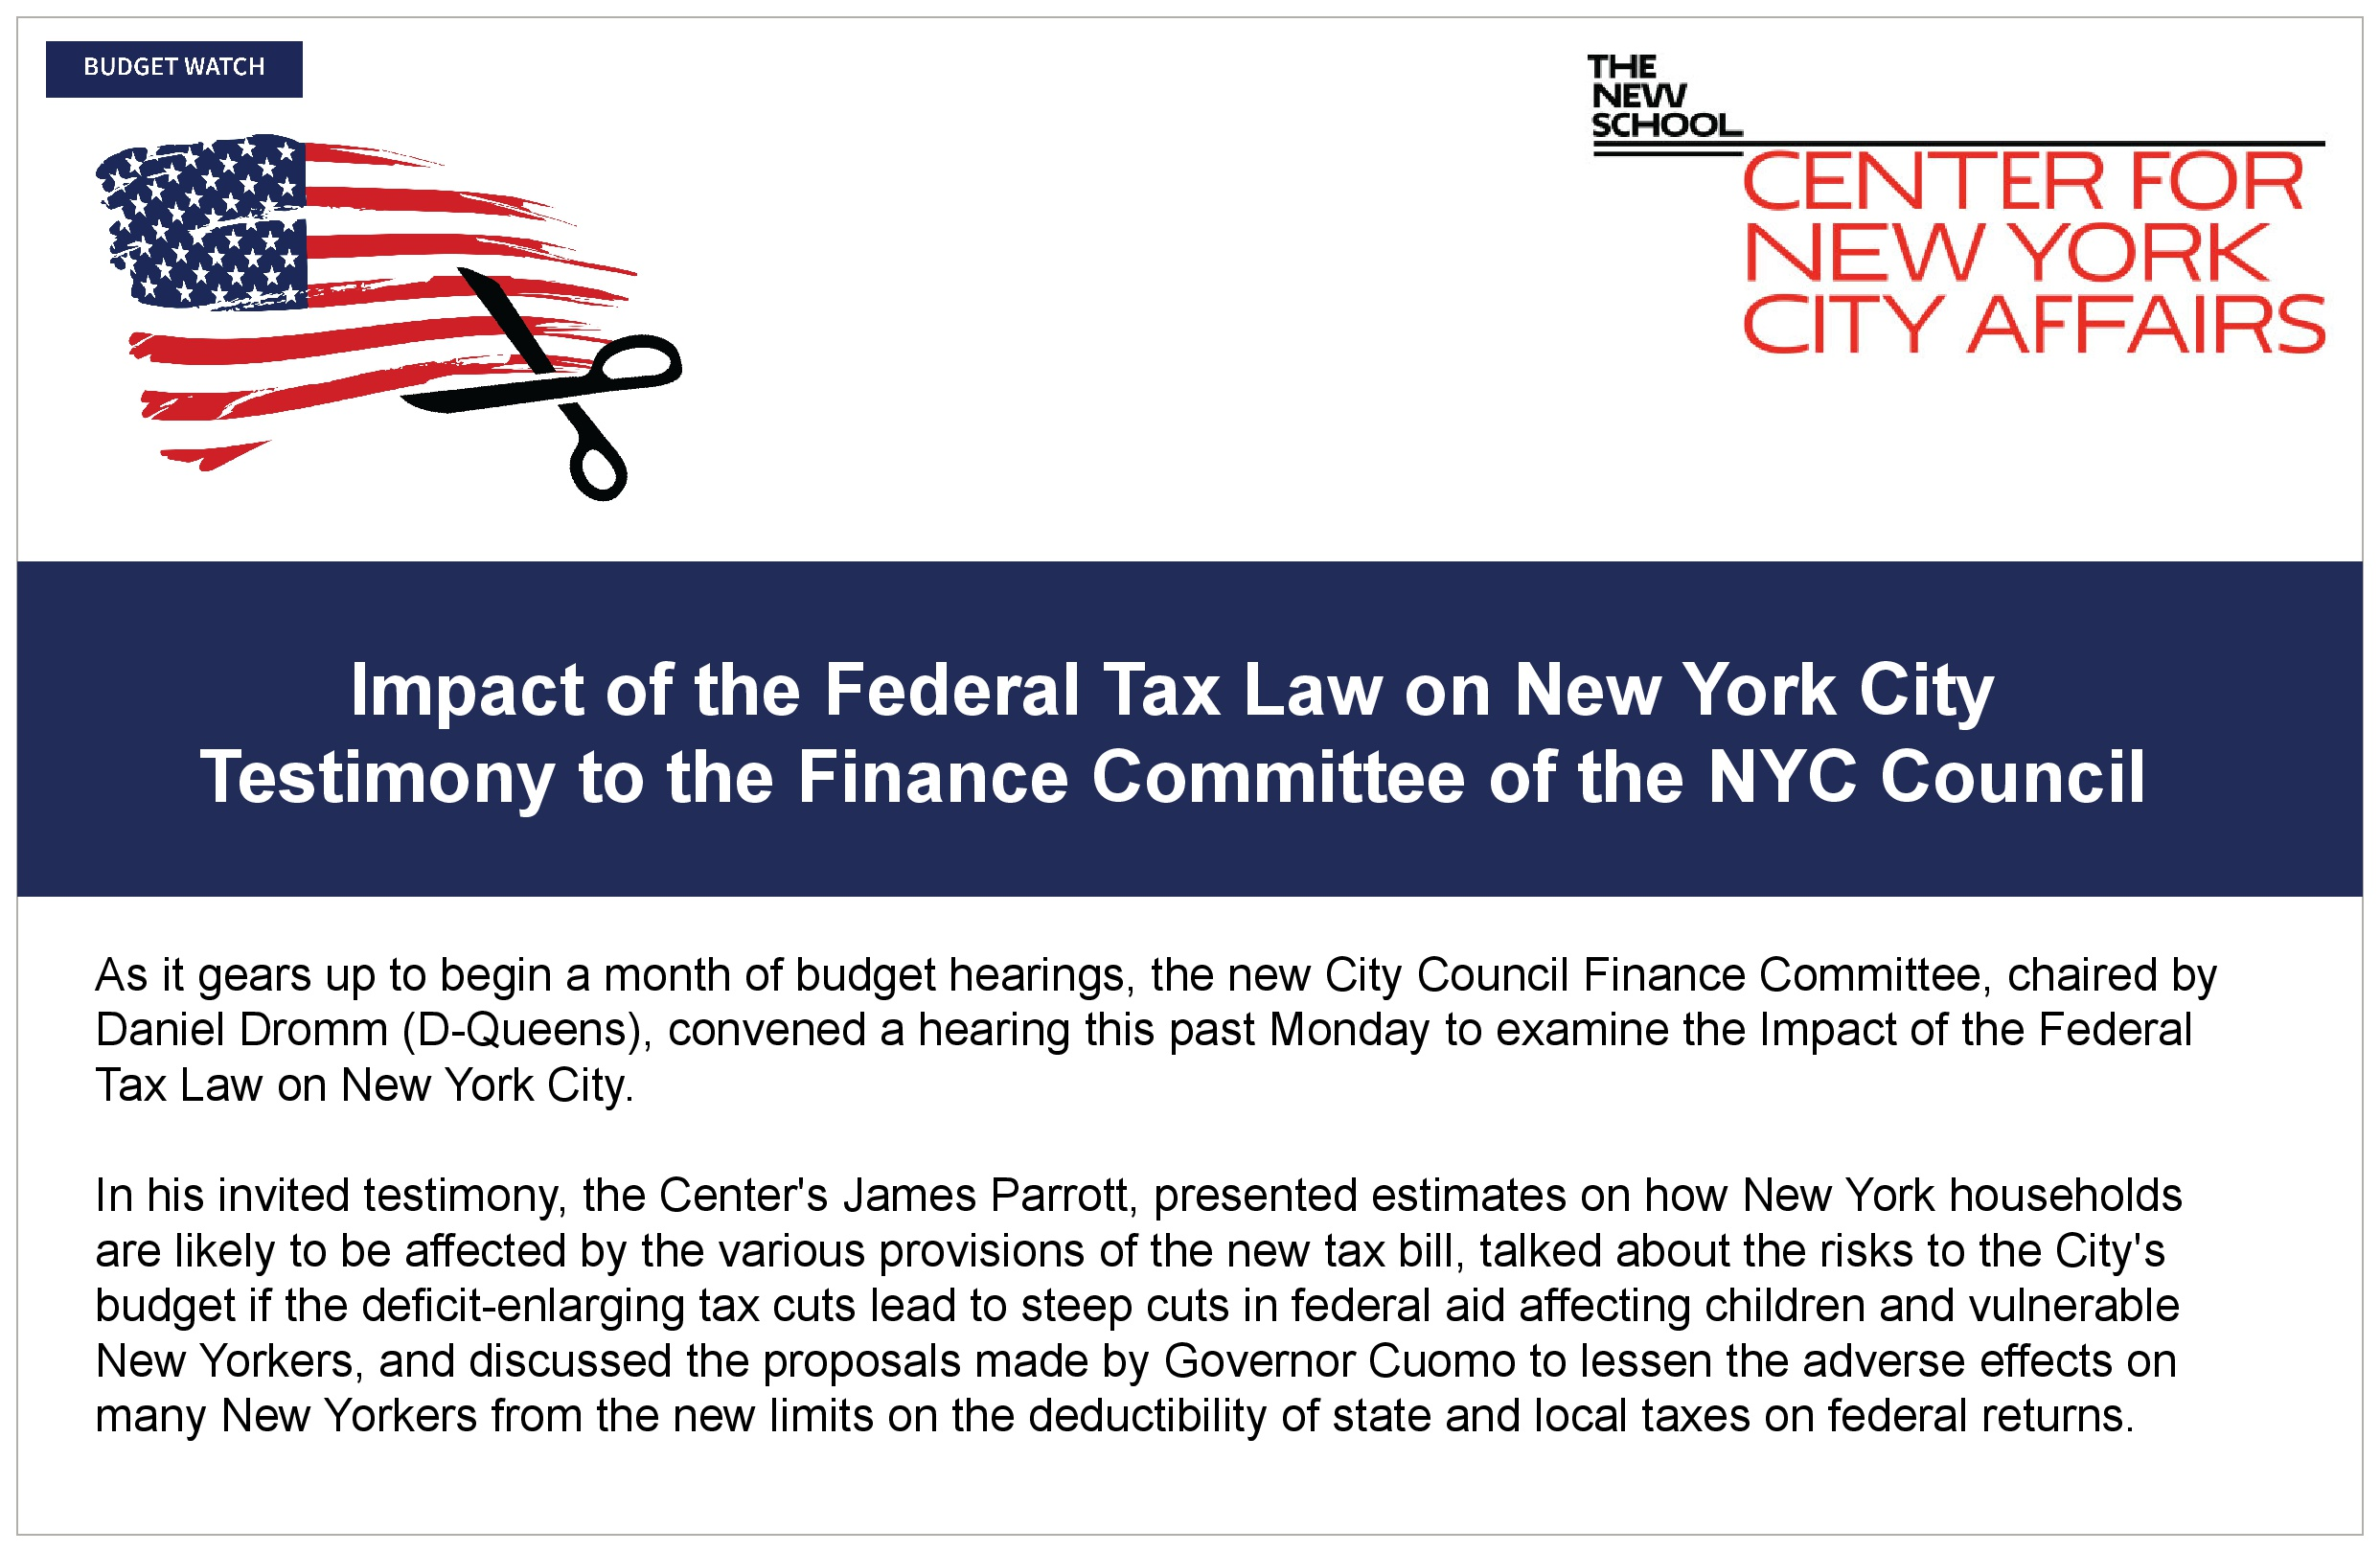 BW 4 Impact of the Federal Tax Law on NYC v2-001.jpg